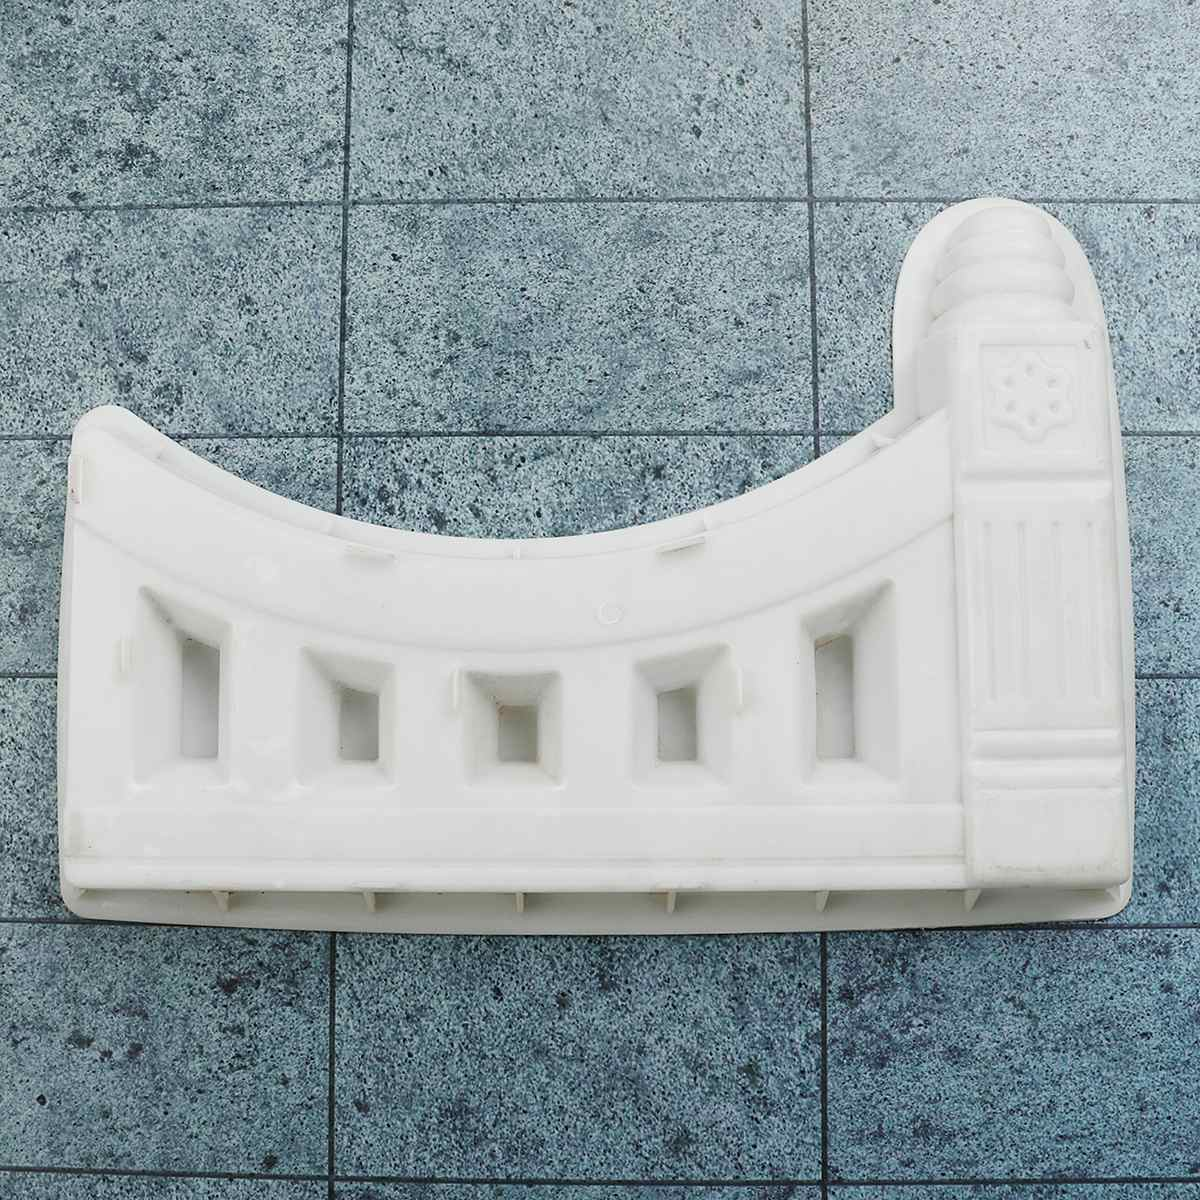 DIY Antique Brick Mold Concrete Fence Plastic Molds for Garden Flower Pool Courtyard Hole Paving Mold for Garden Building Supply